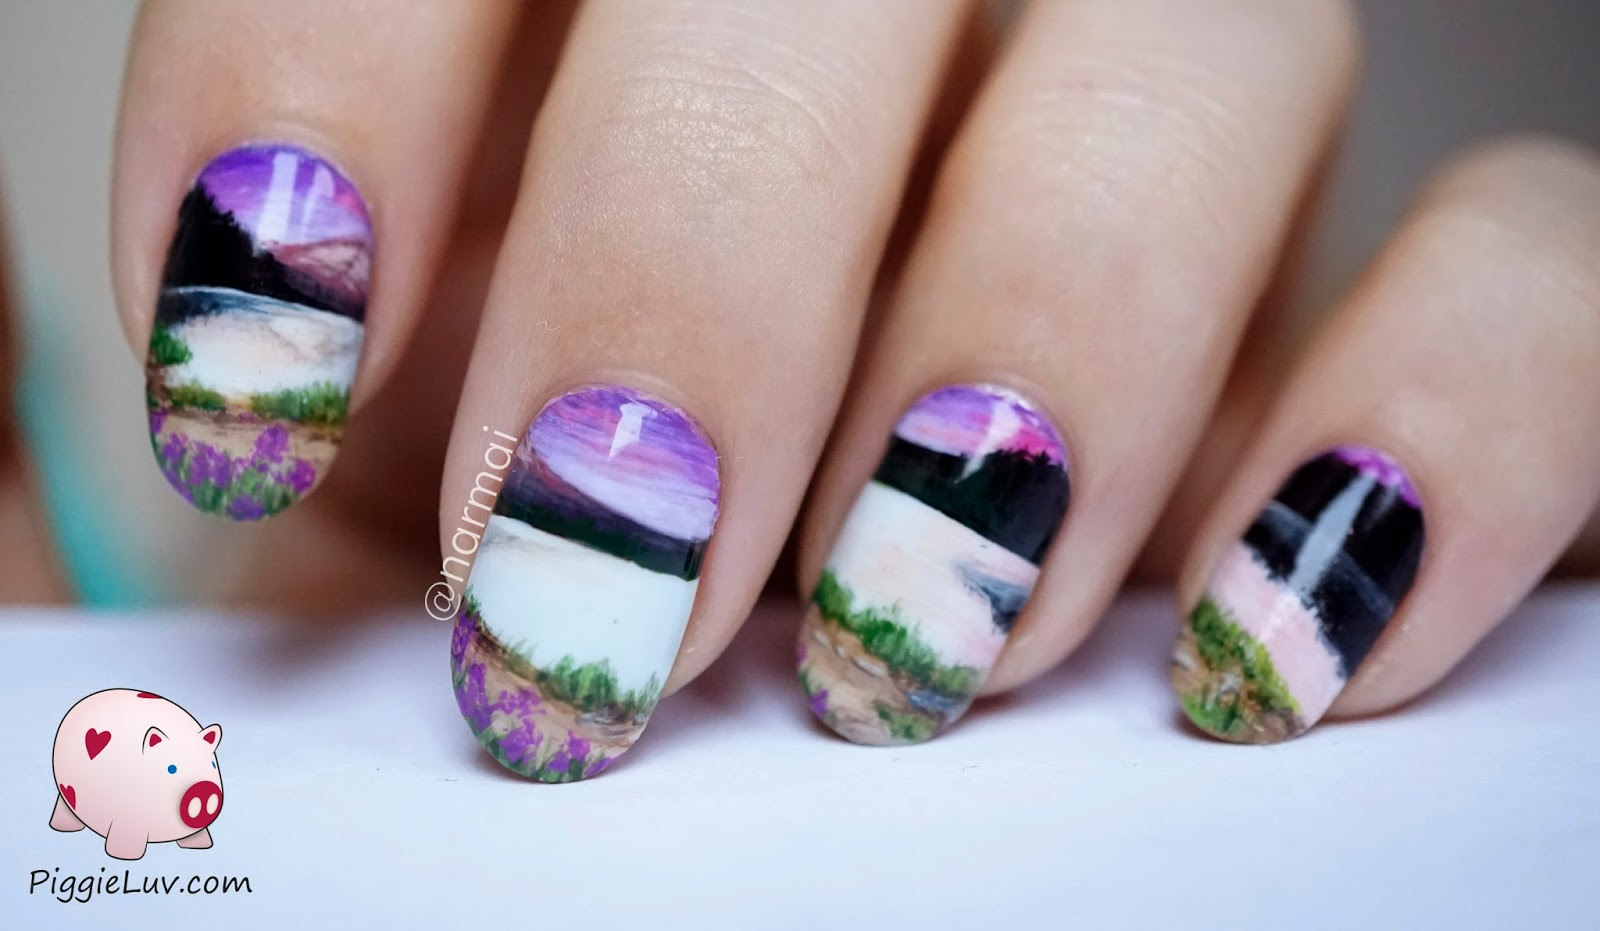 Piggieluv Wide Open Landscape Nail Art Miniature Painting